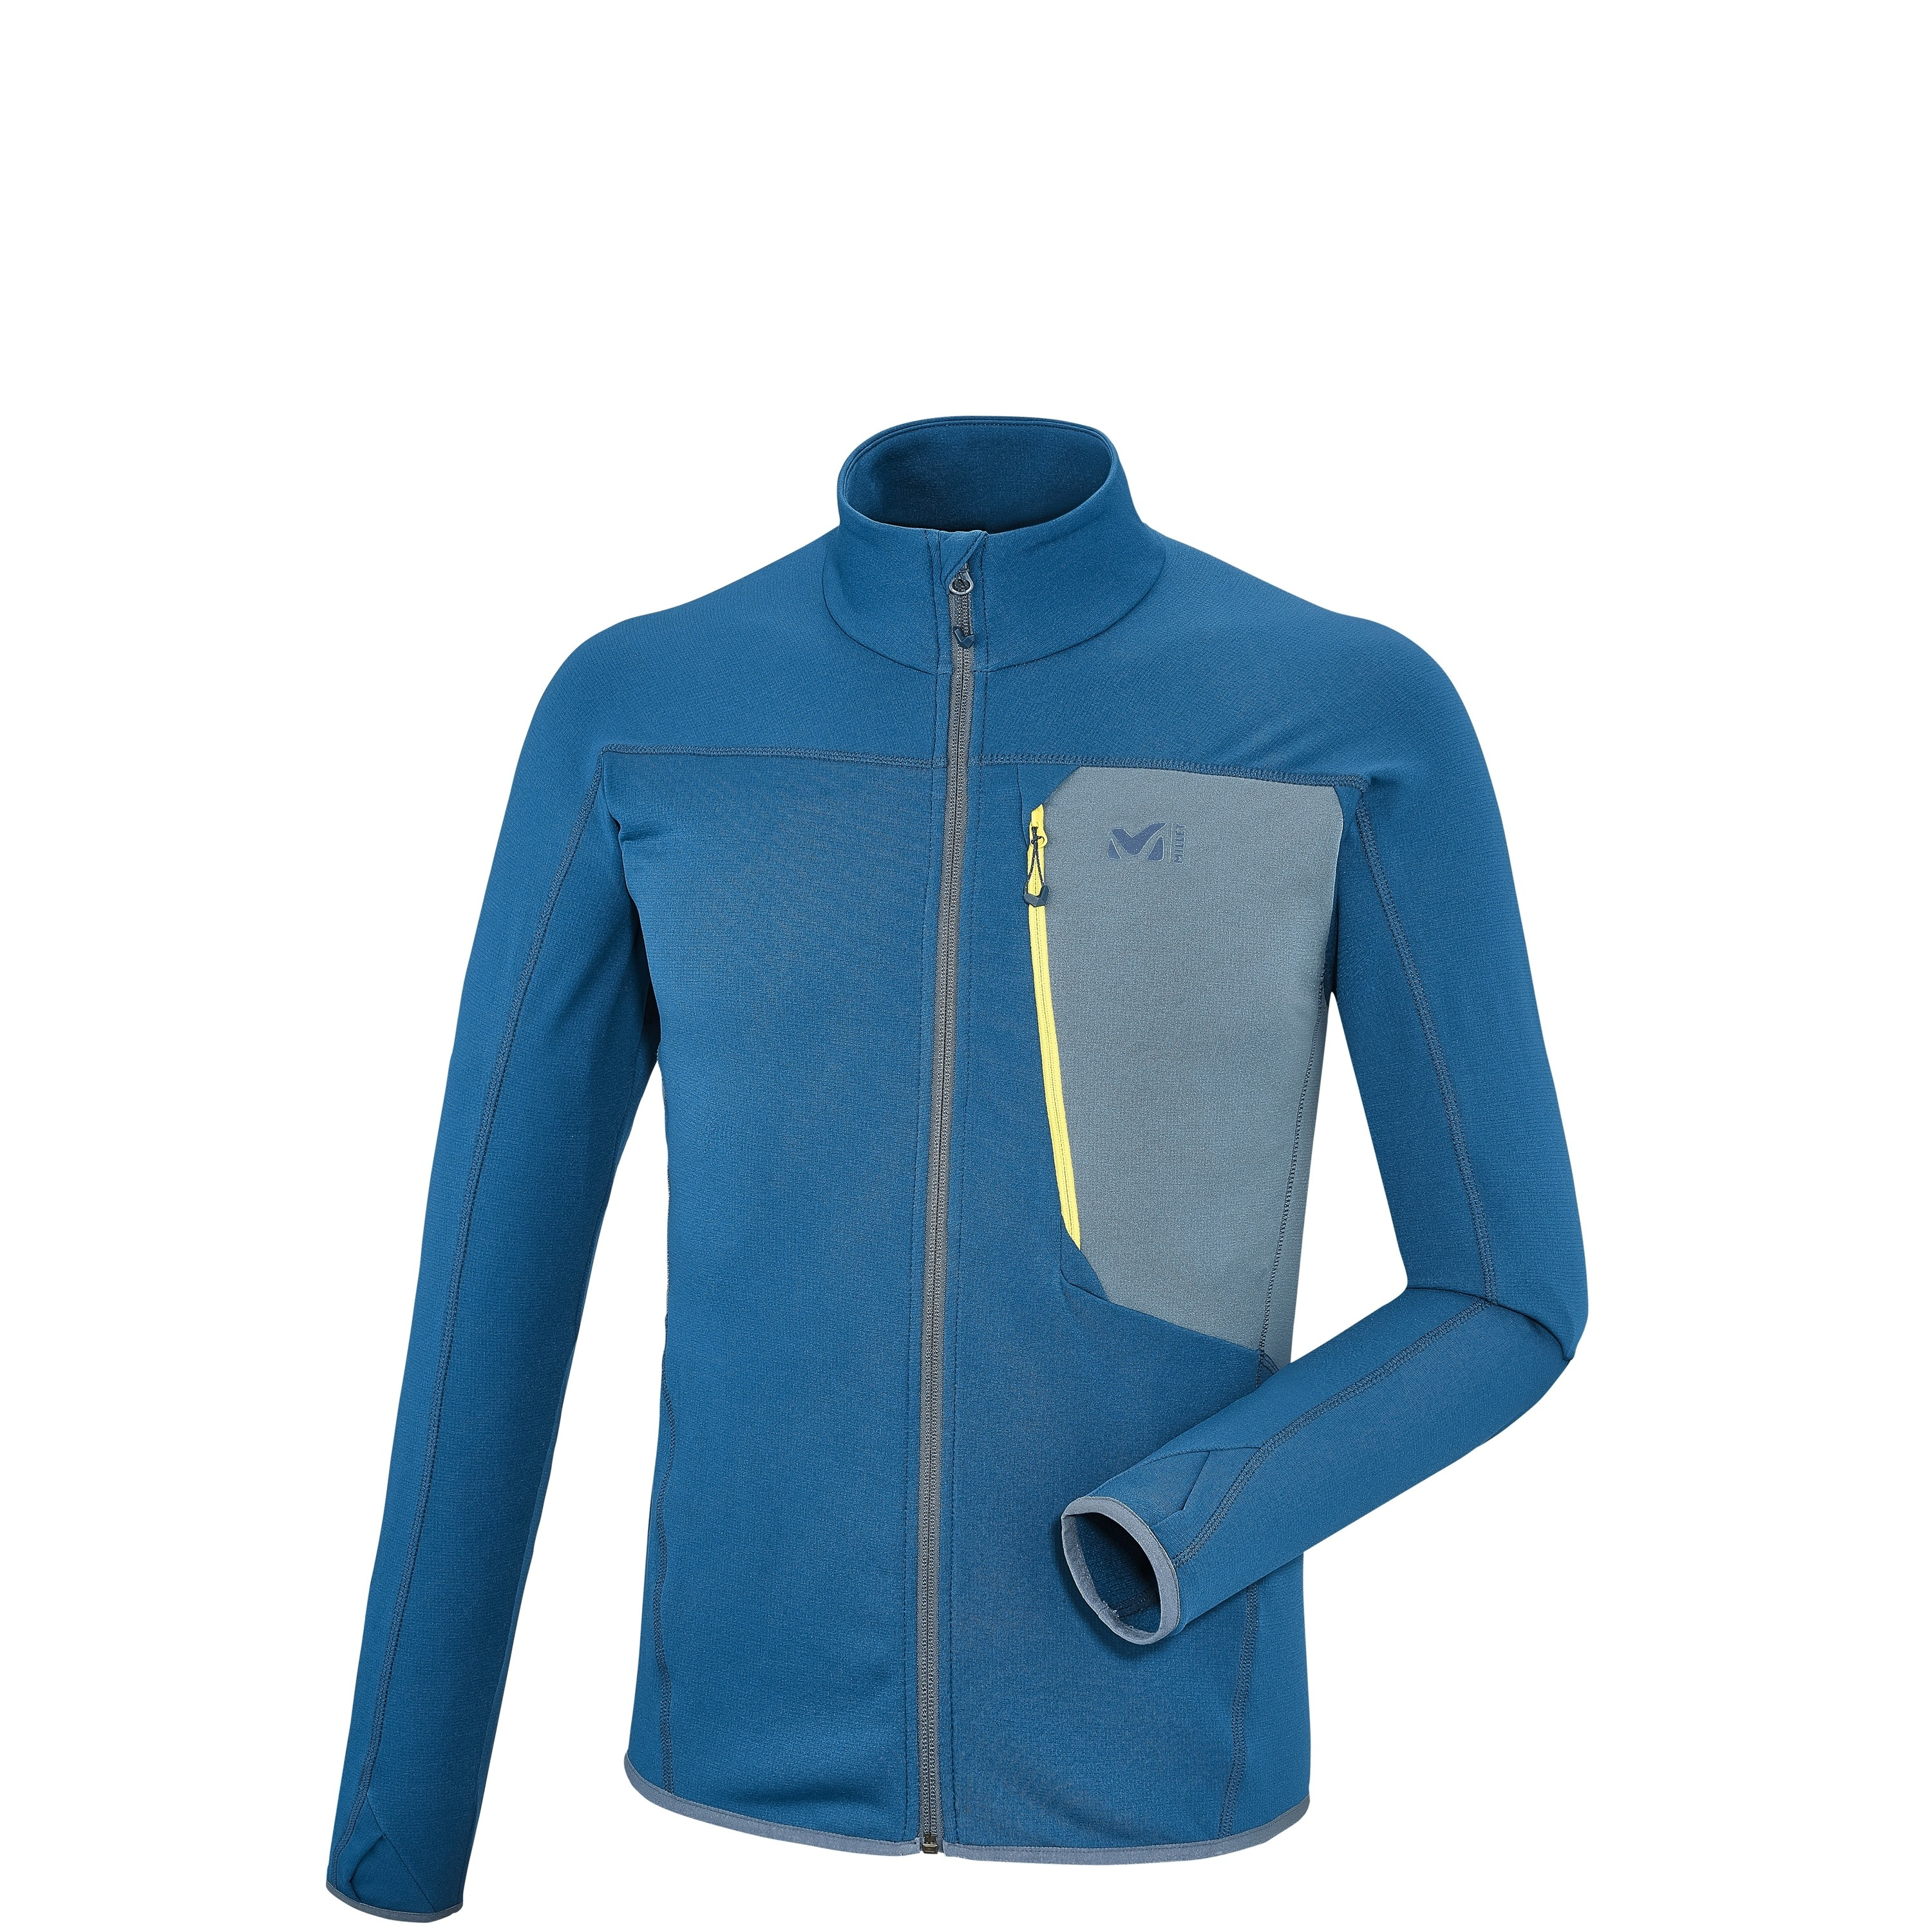 LTK THERMAL JKT